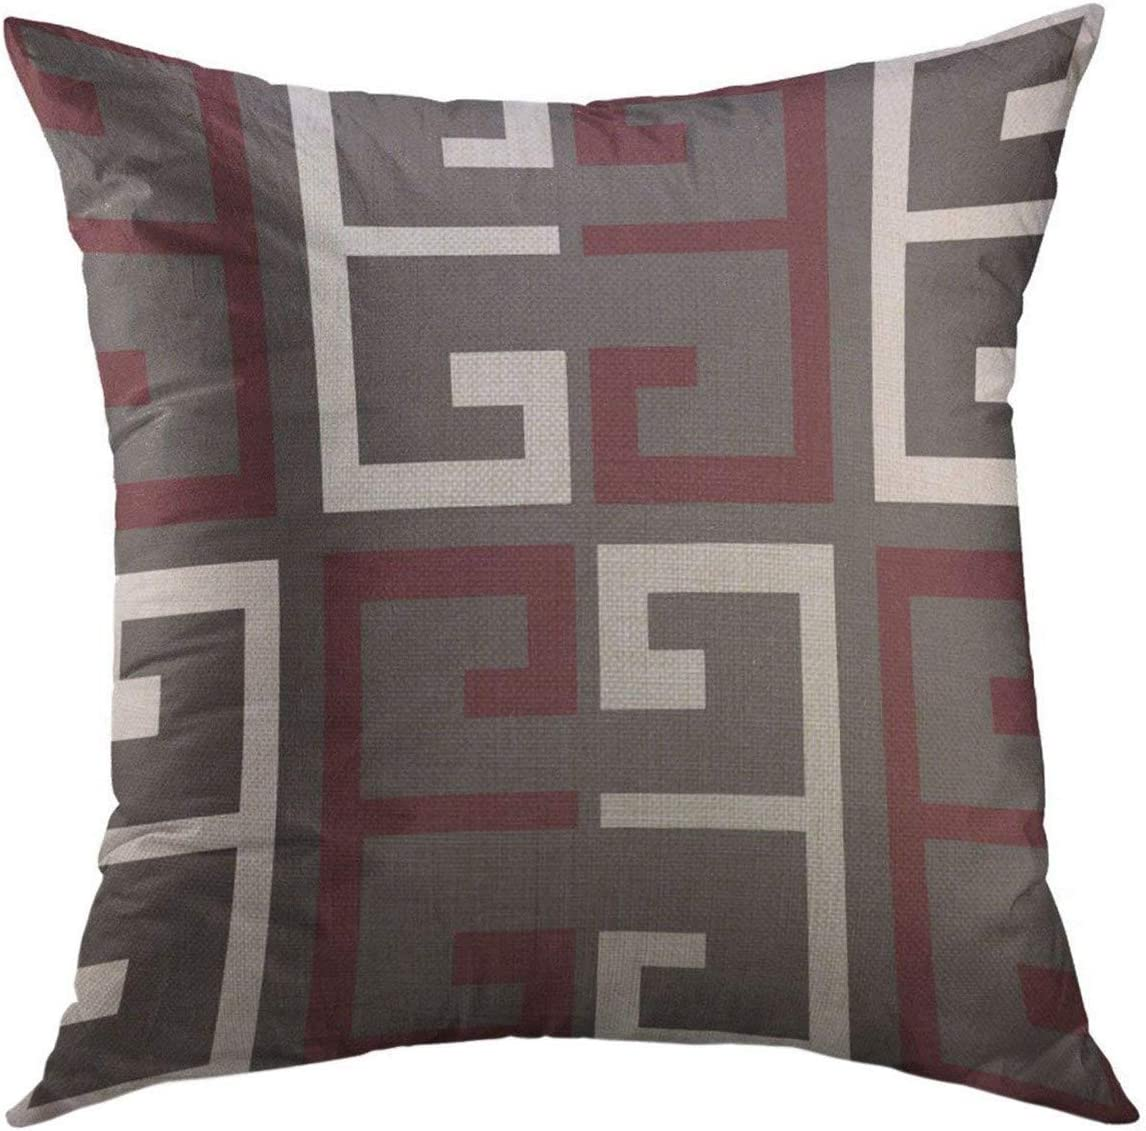 Mugod Decorative Throw Pillow Cover for Couch Sofa,Red Dark Gray Maroon White Colored Home Decor Pillow Case 18x18 Inch